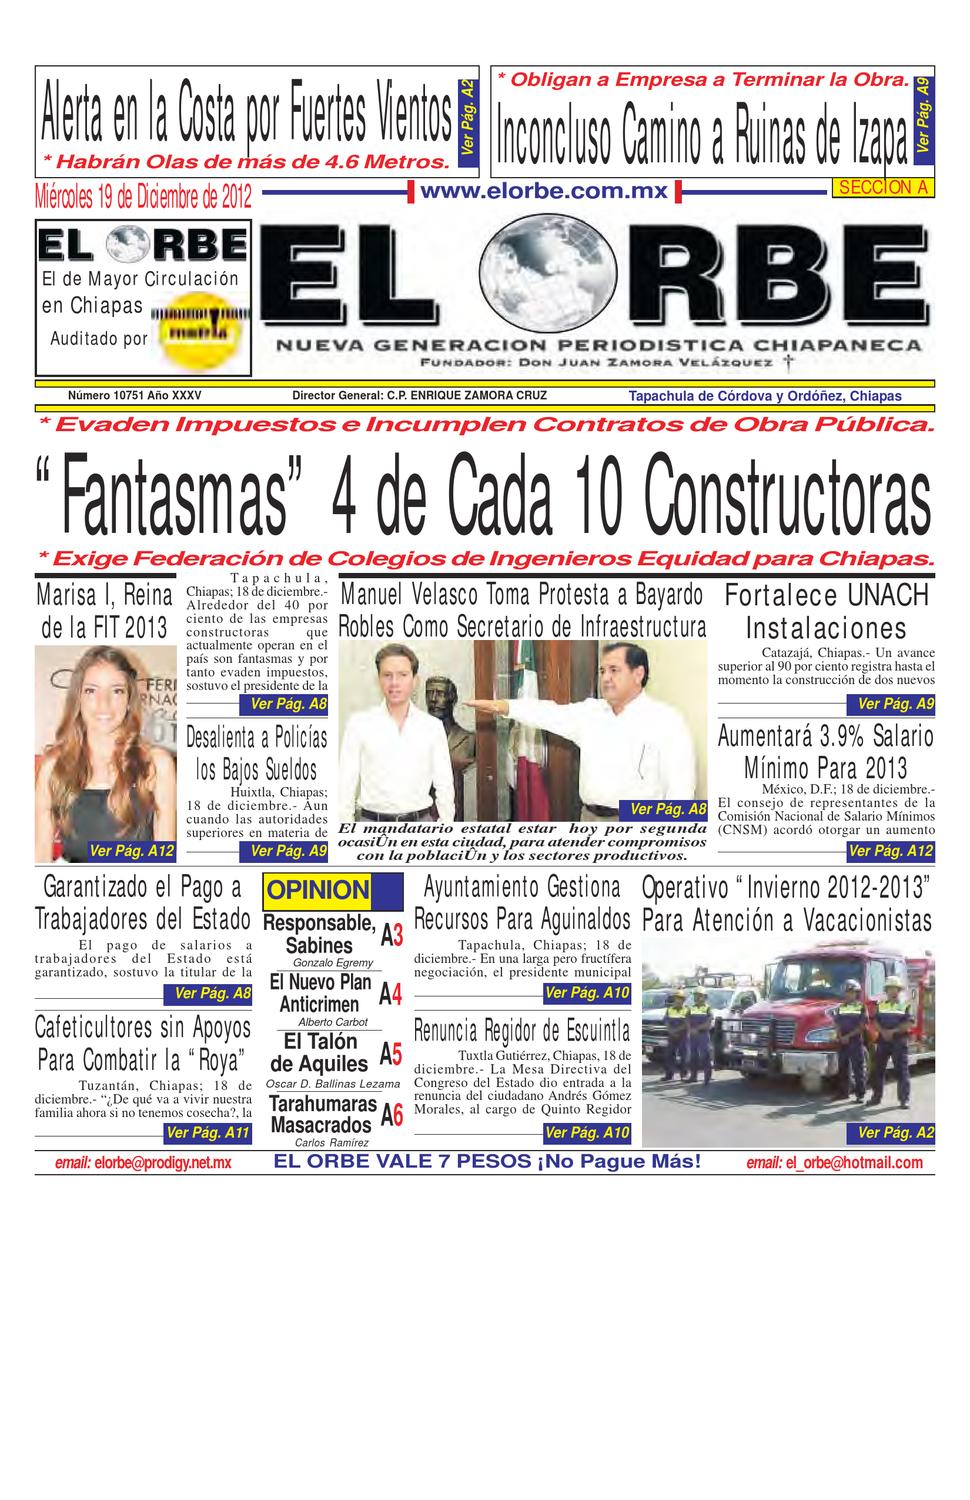 DICIEMBRE 19 DE 2012 by elorbe orbe - issuu f1f509f79a5ee